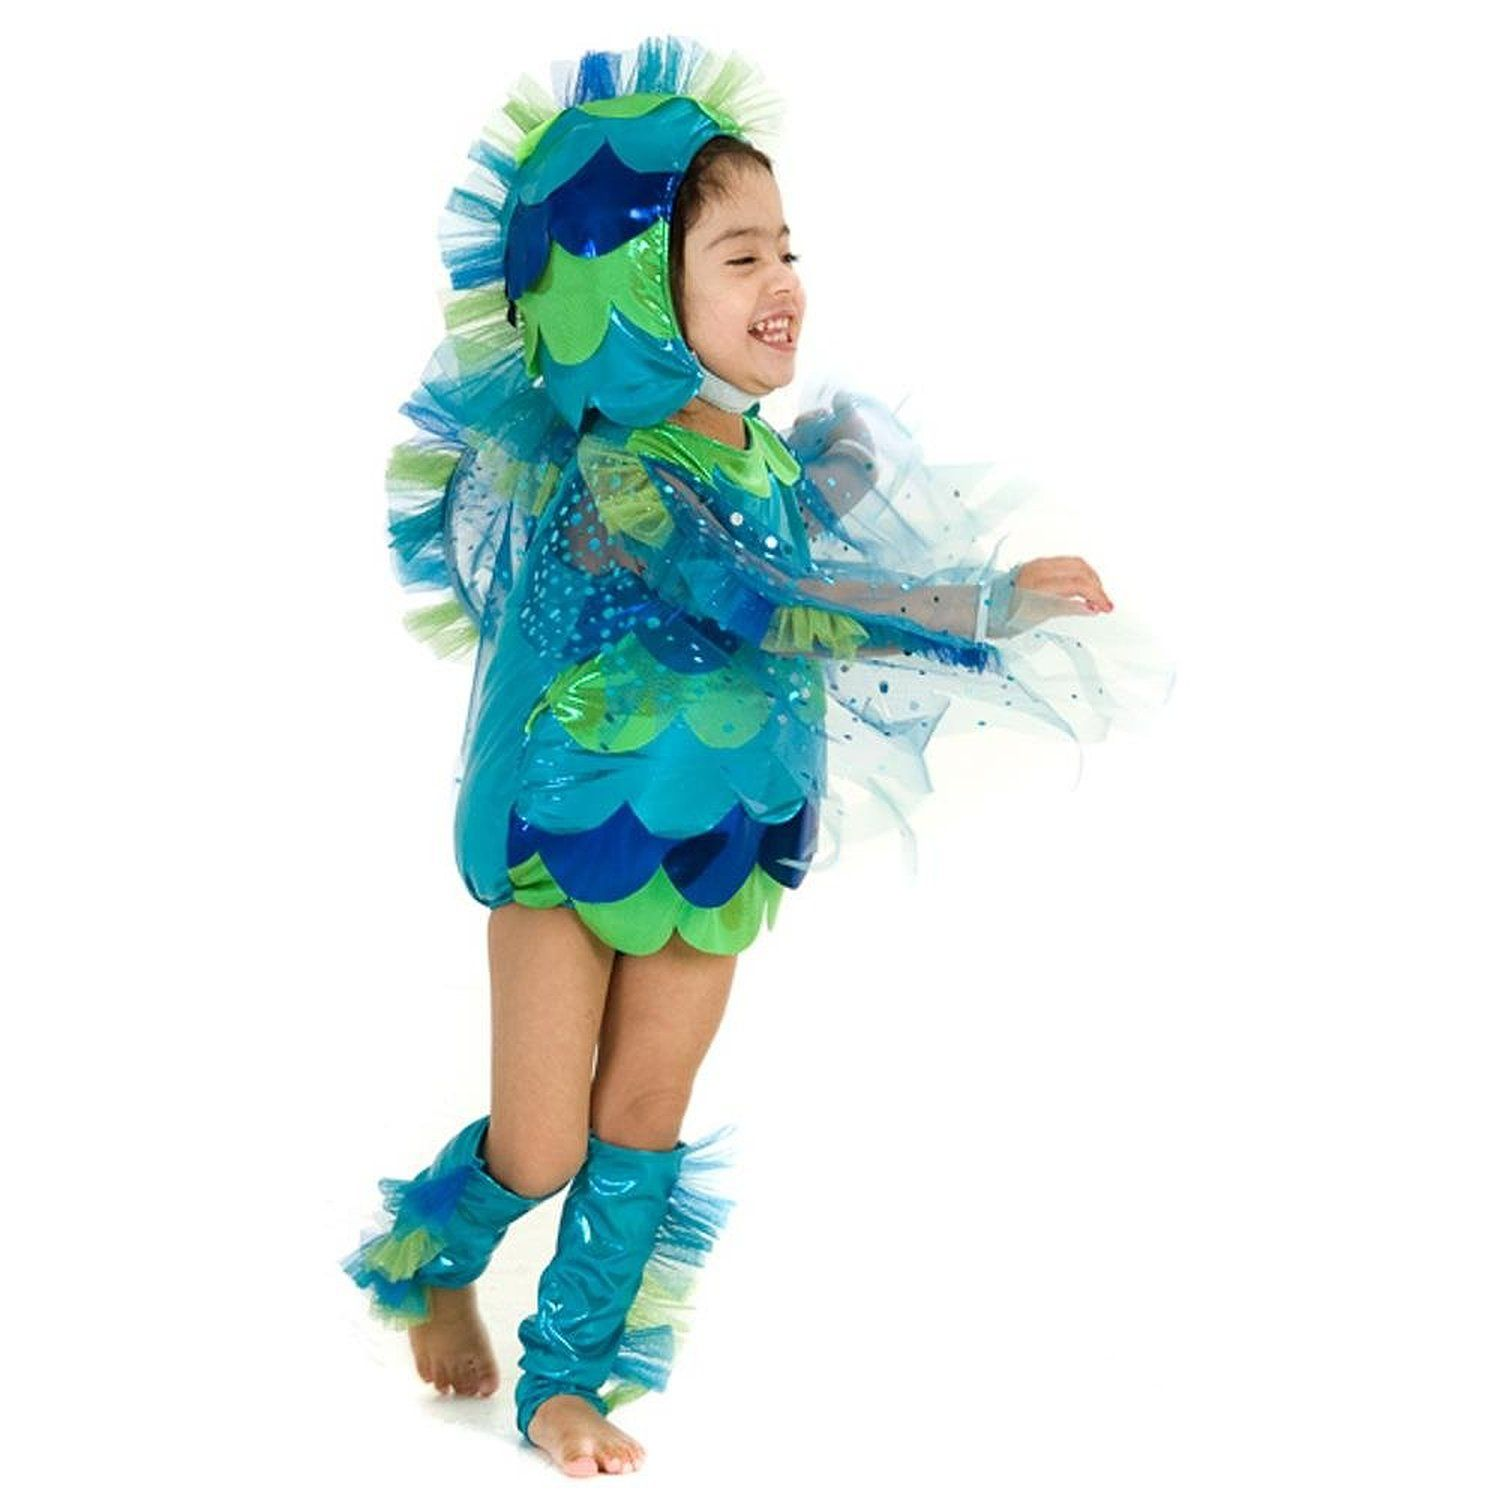 amazoncom toddler beta fish costume 2t clothing accessories novelty special use costumes - Kids Halloween Costumes Amazon